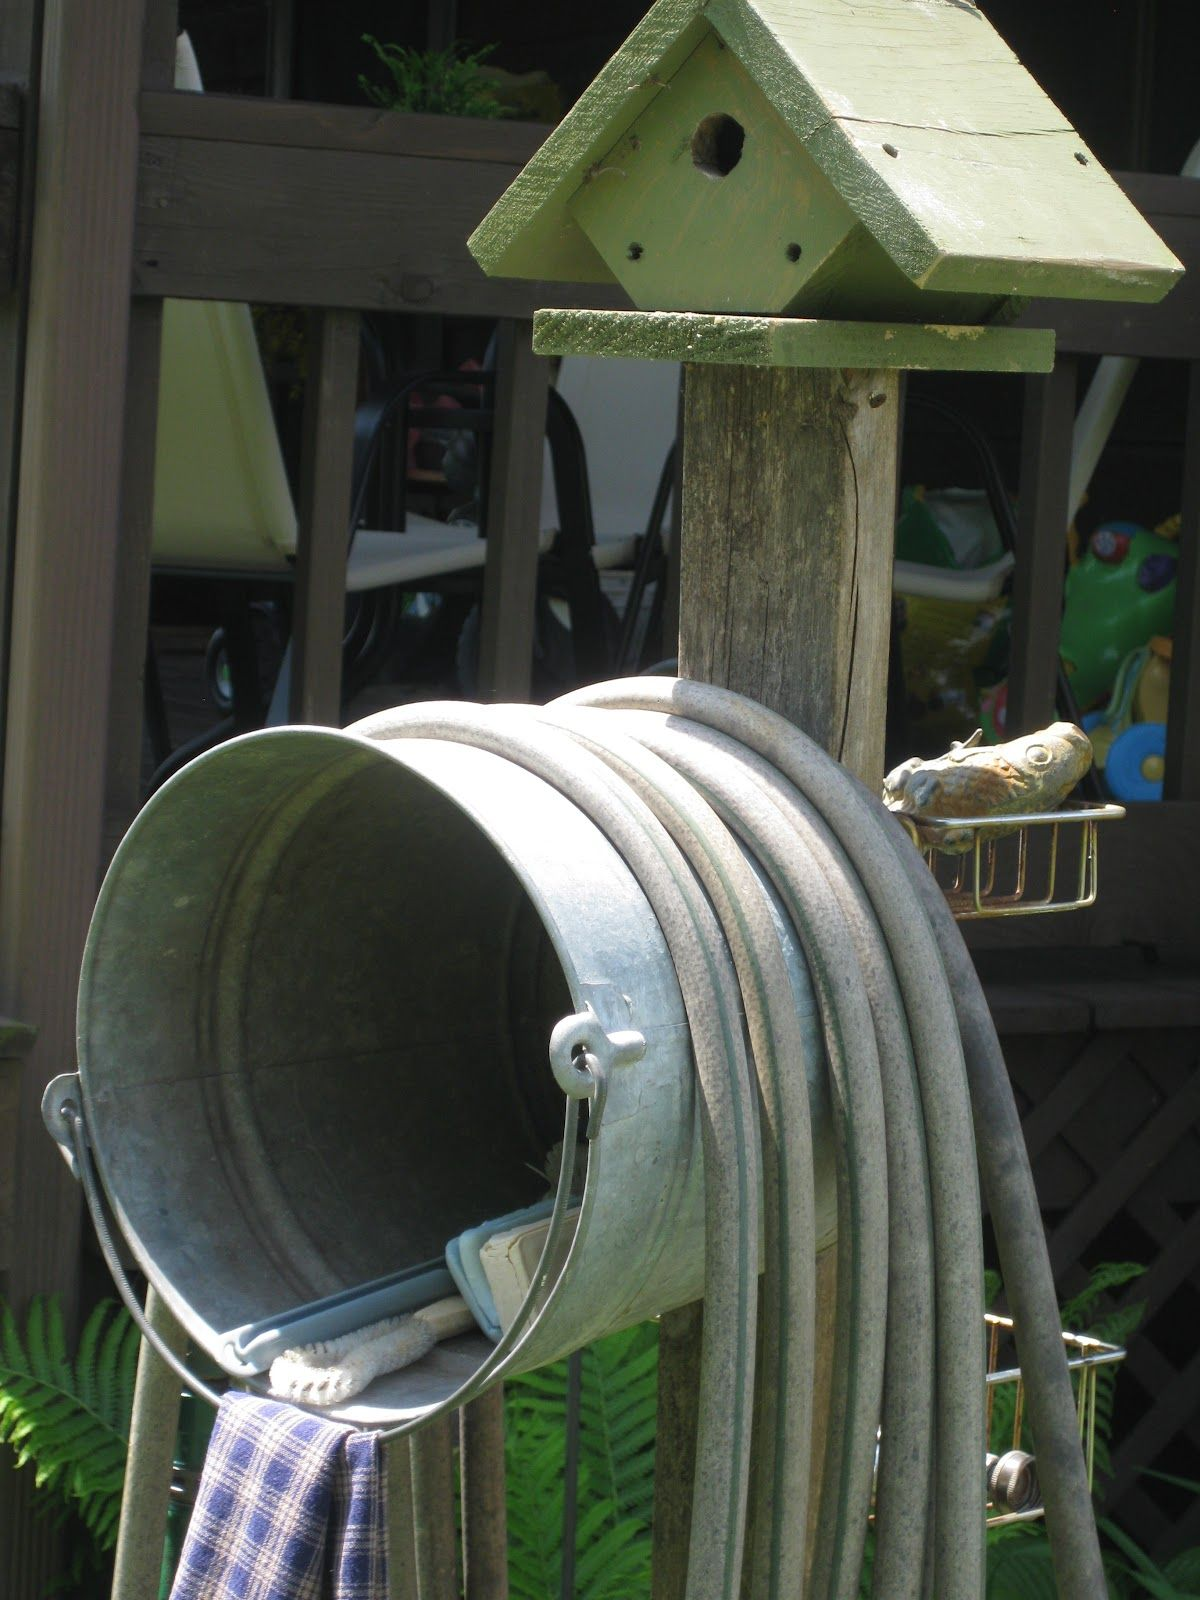 DIY Garden Hose Storage   Along With Being A Hose Holder, Itu0027s A Great Idea  To House All The Small Hose Gadgets Too.